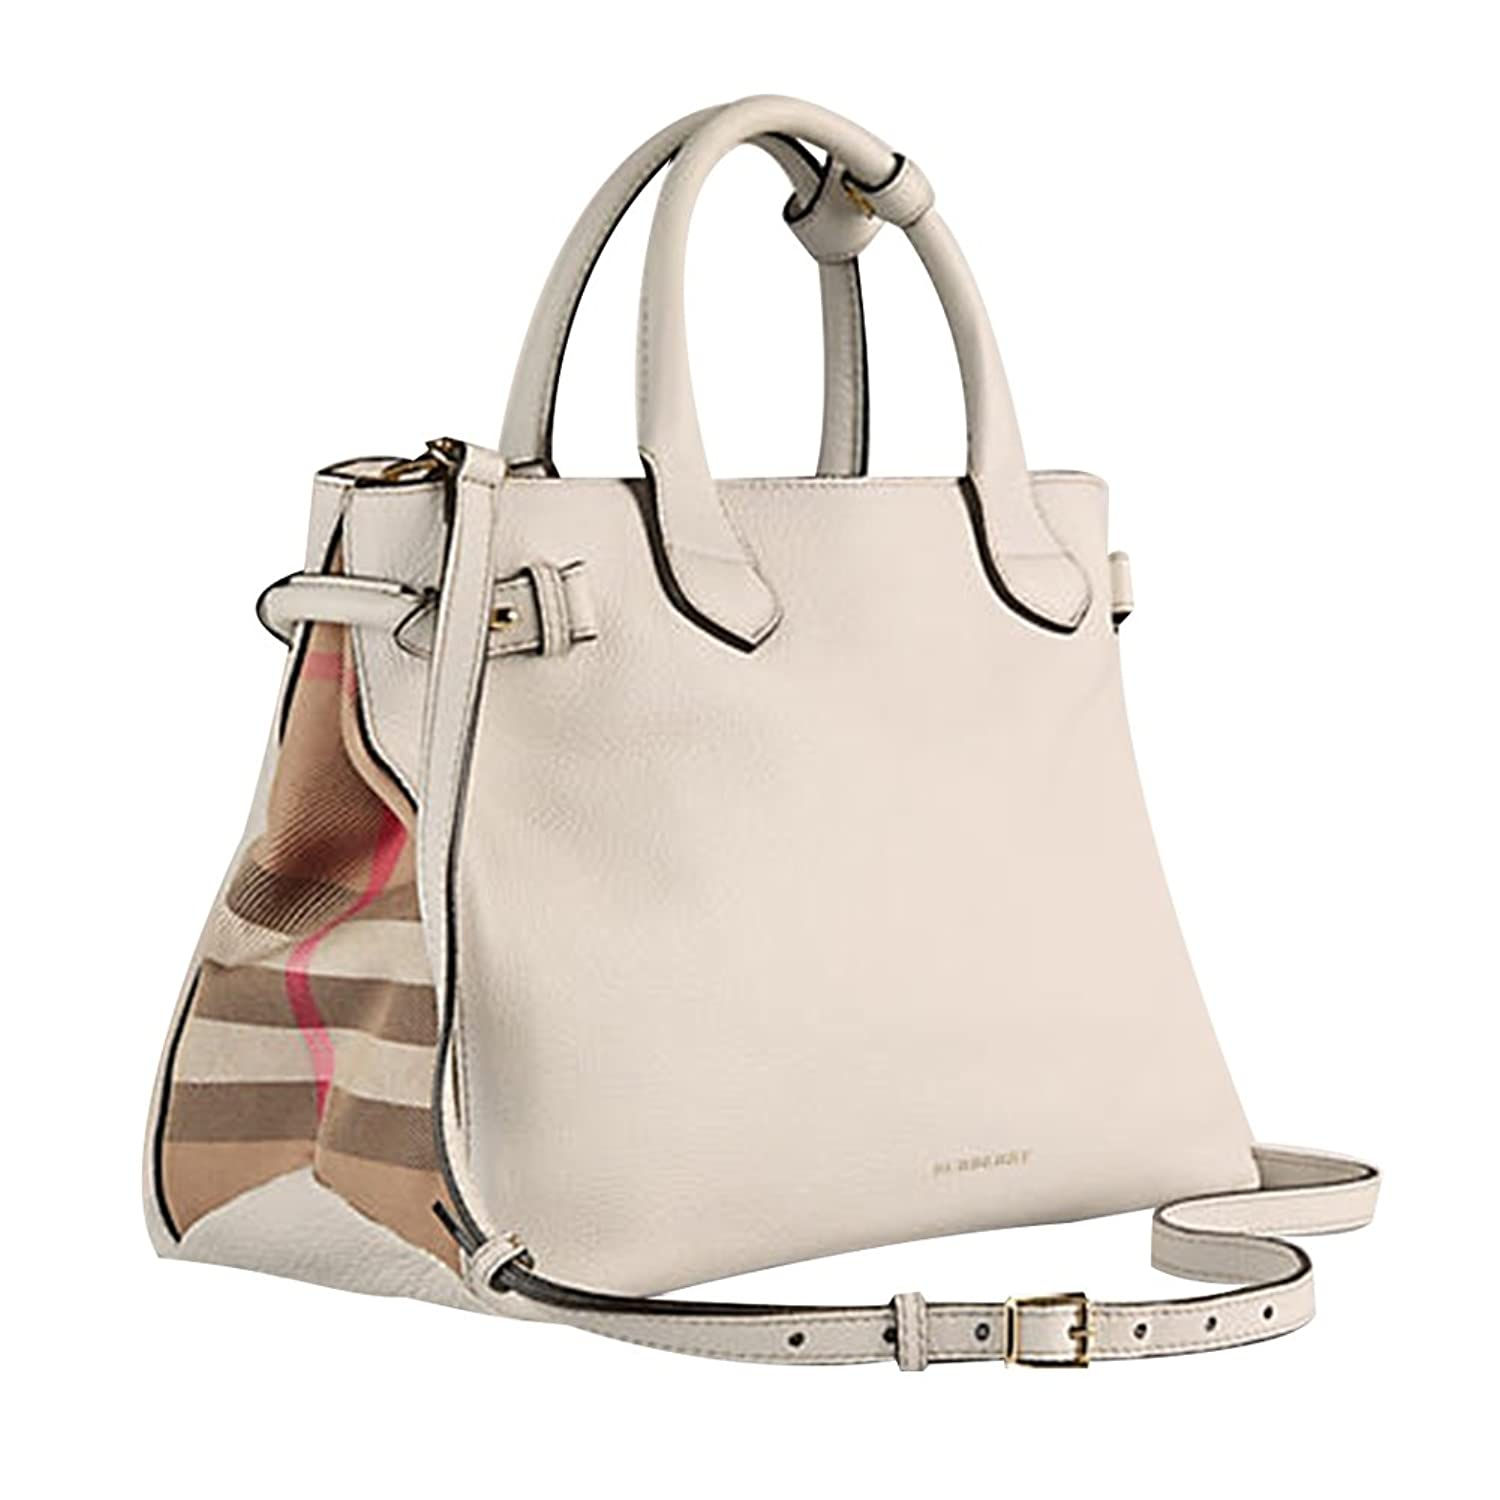 84b61e5107e8 Tote Bag Handbag Authentic Burberry Medium Banner in Leather and House  Check Natural Item 39589791